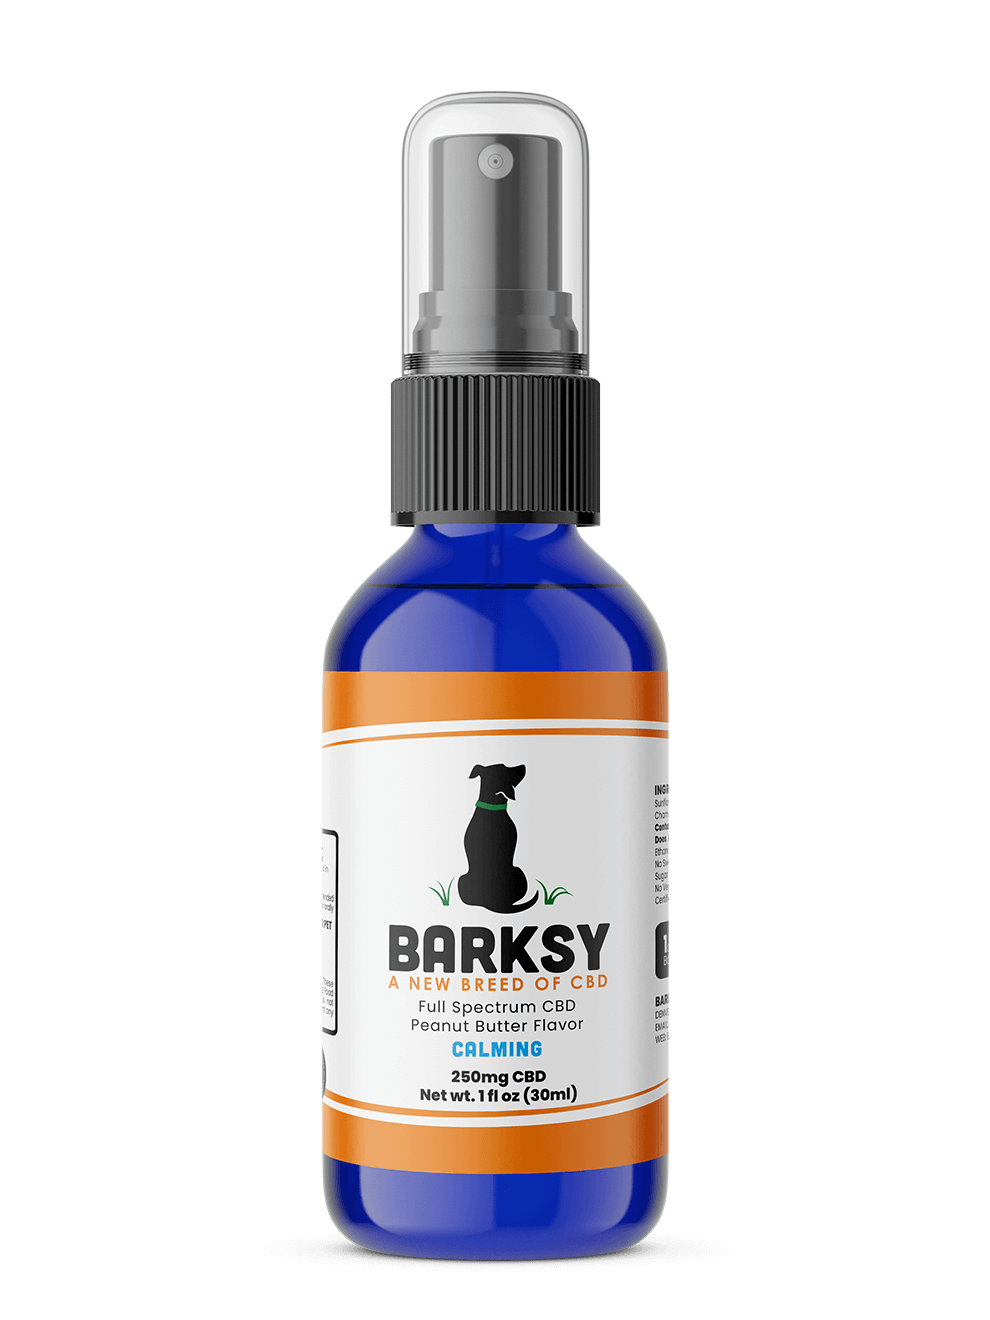 Bottle - Barksy - Peanut Butter - Calming